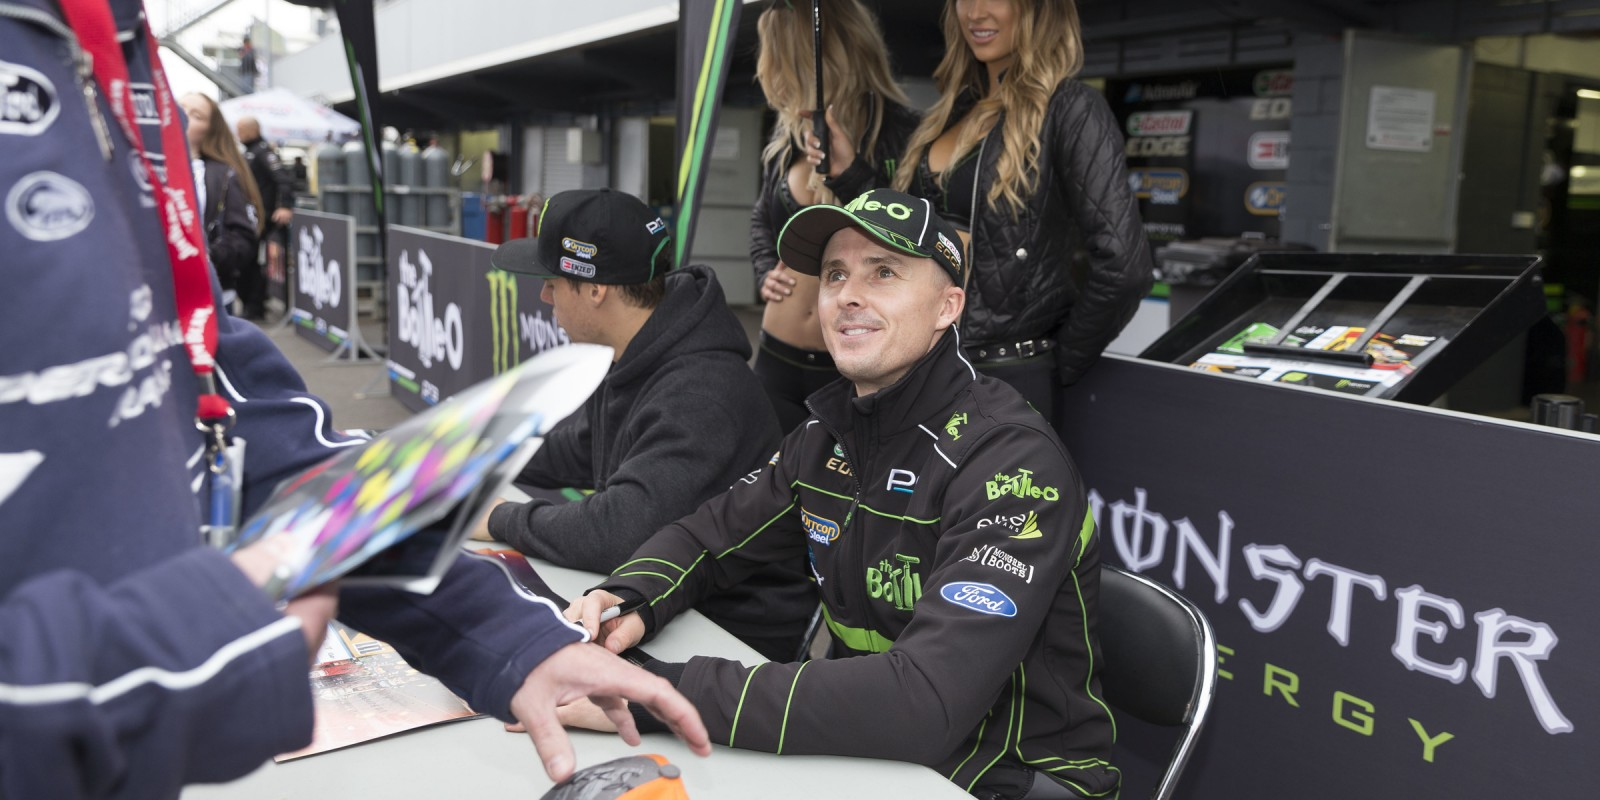 Monster Energy Racing at V8 Supercars - Phillip Island 2016